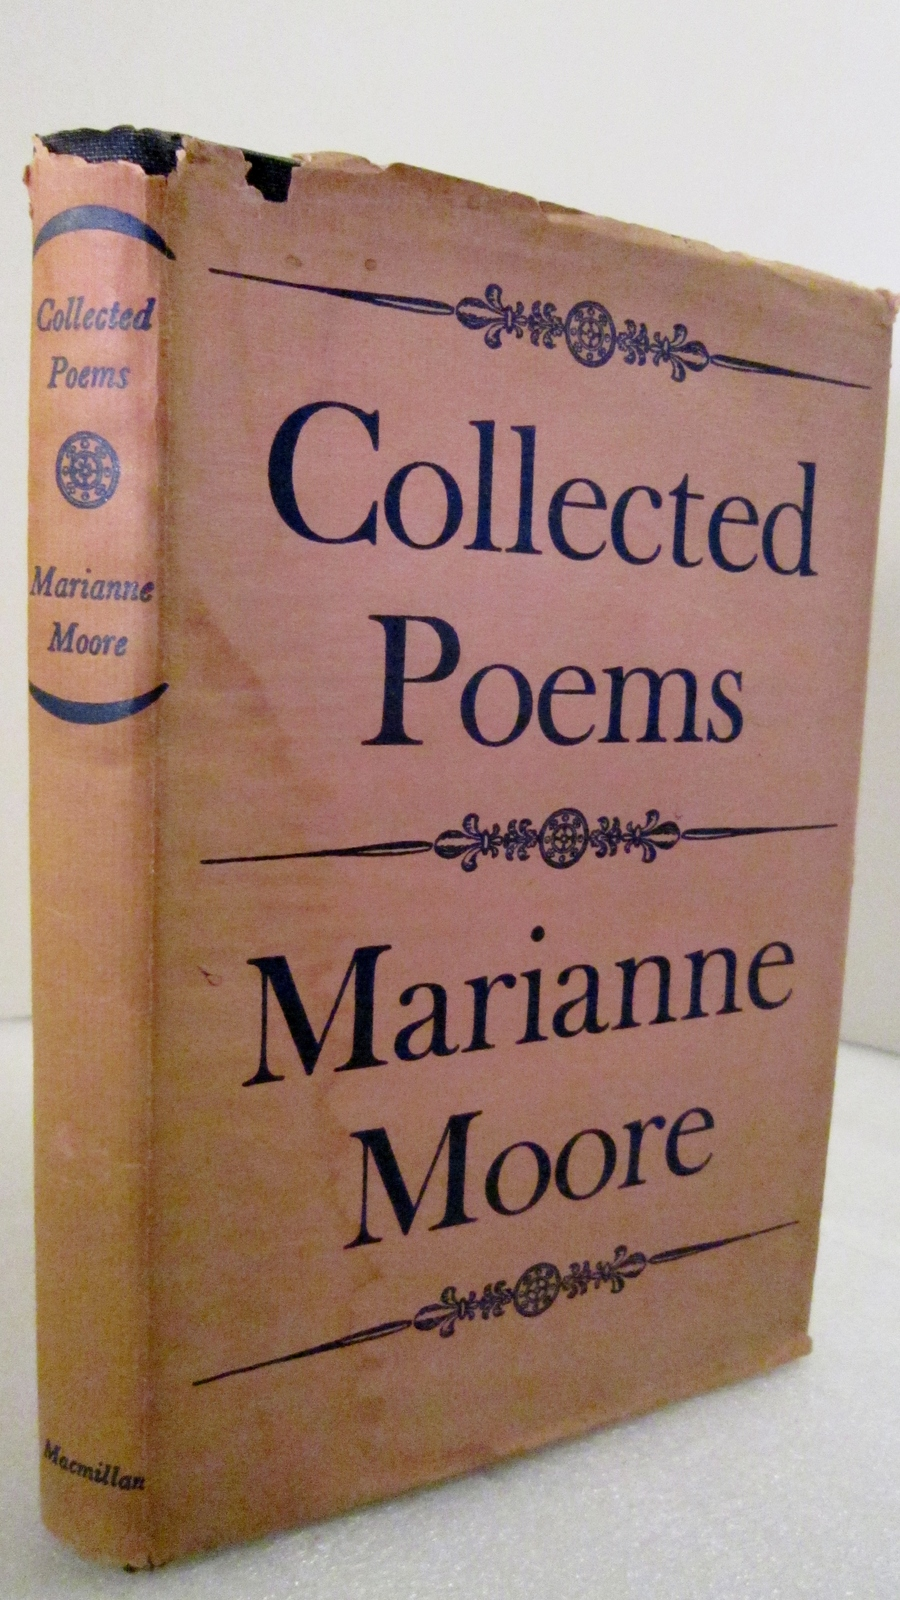 Collected poems 1952 marianne moore  1930s 1940s poetry 01